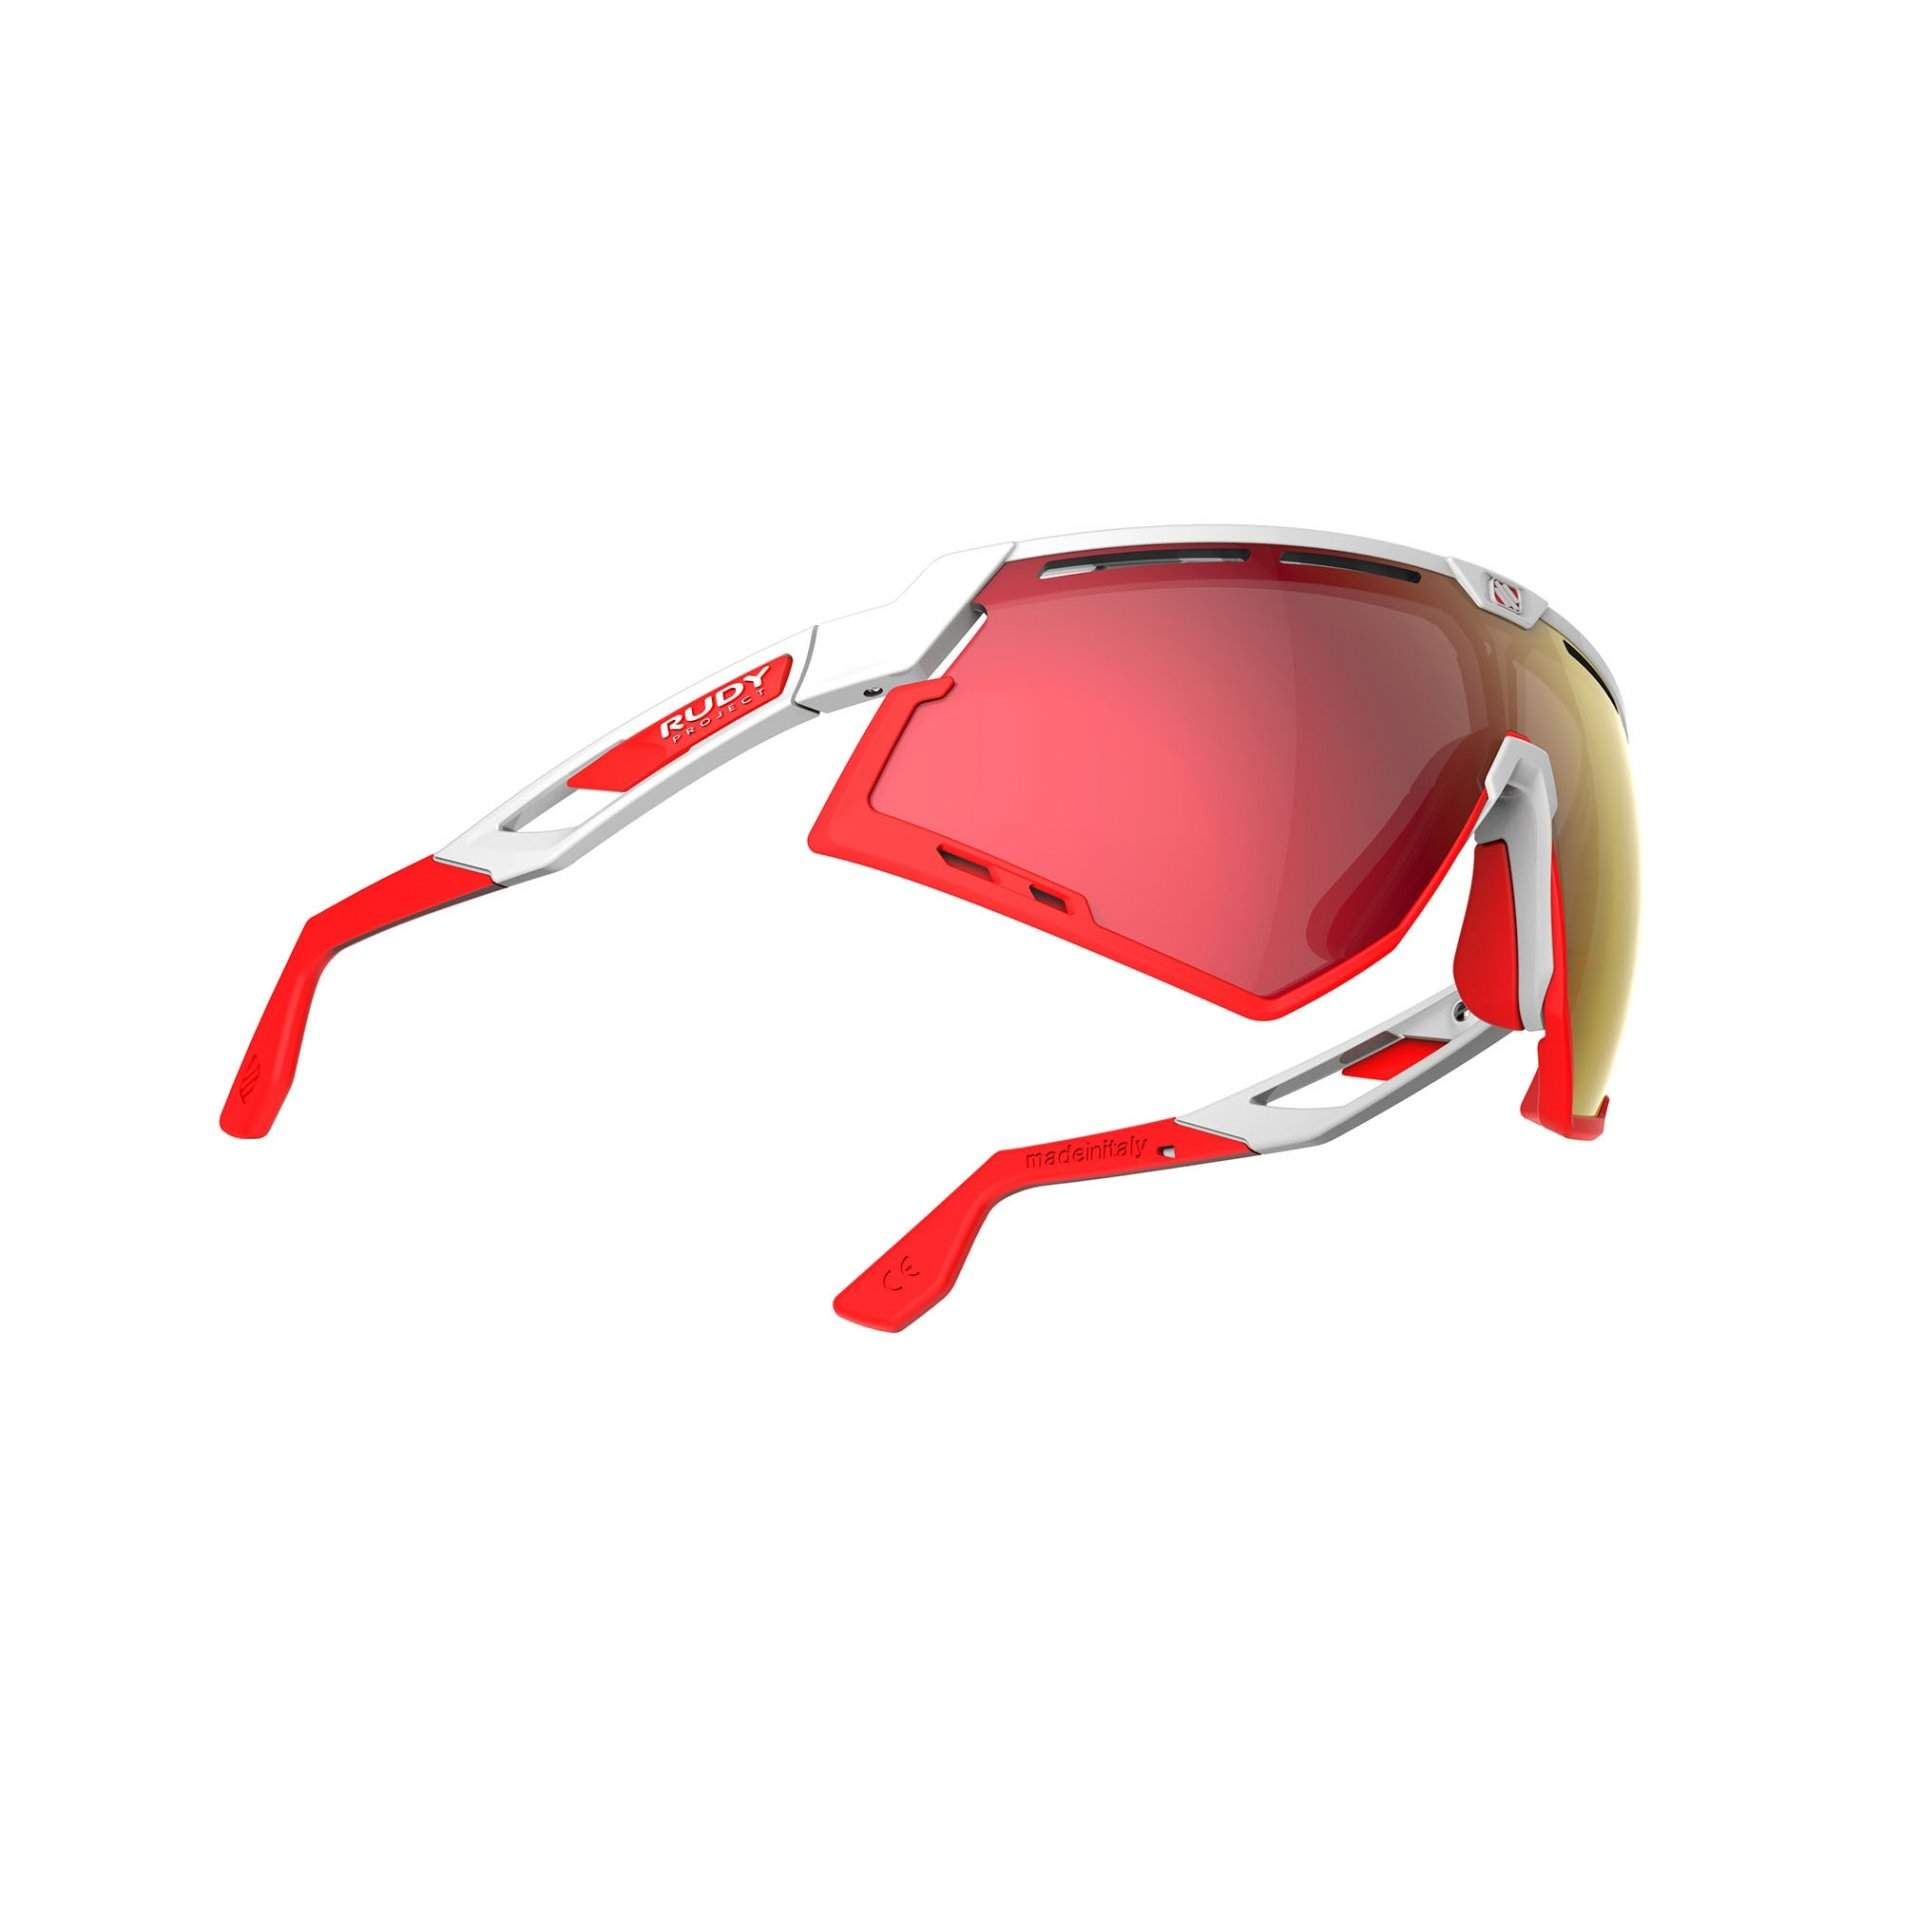 OKULARY RUDY PROJECT DEFENDER MULTILASER RED + WHITE GLOSS|BUMPRES RED FLUO SP5238690000 Z DOŁU